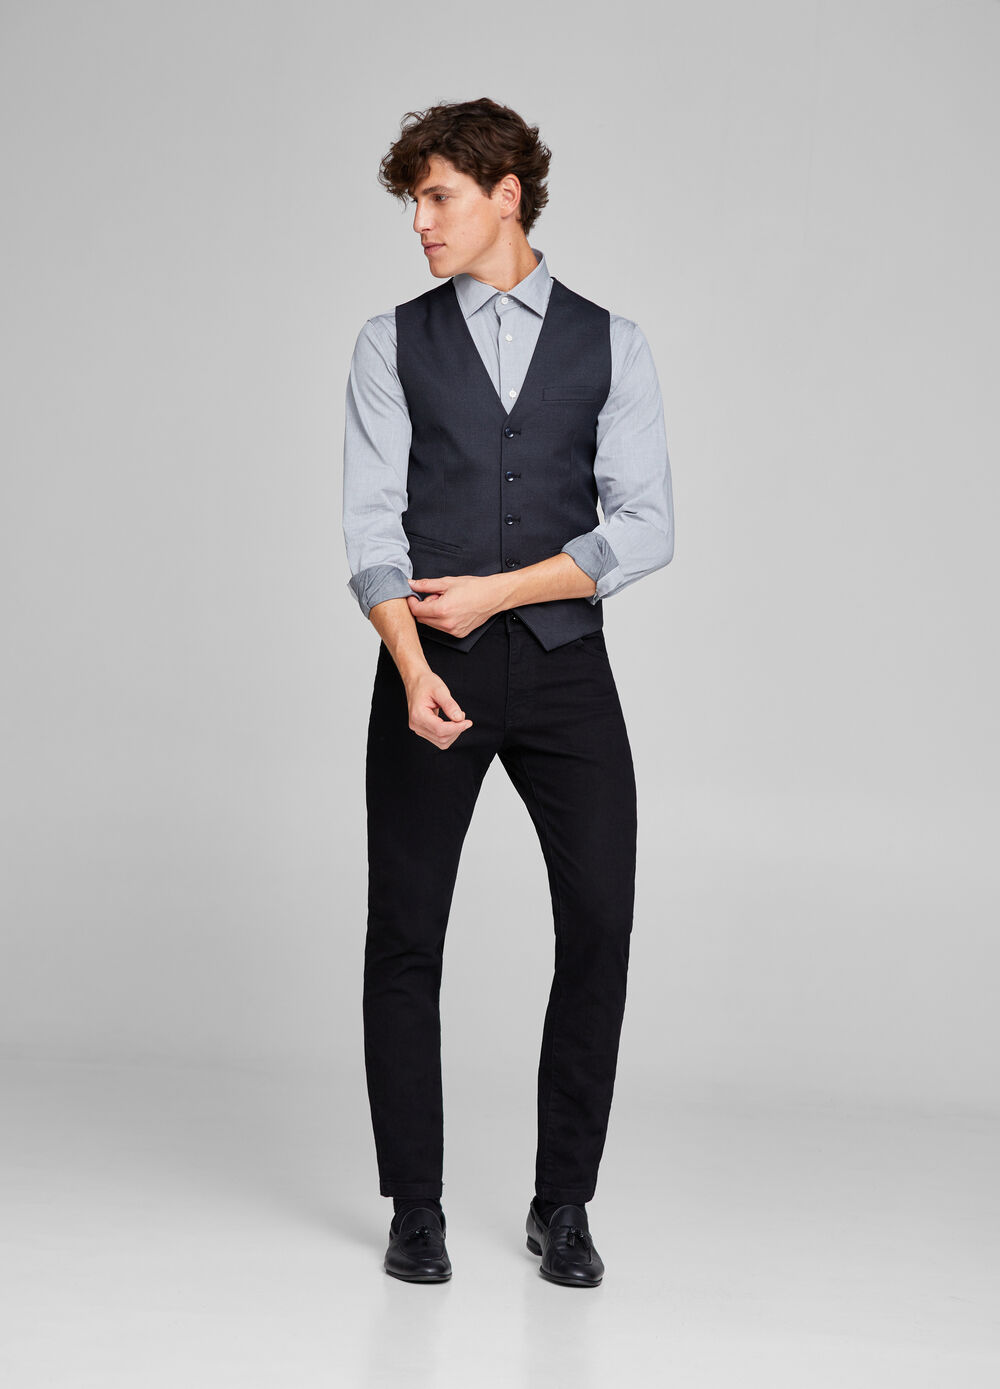 Five-button waistcoat with welt pockets